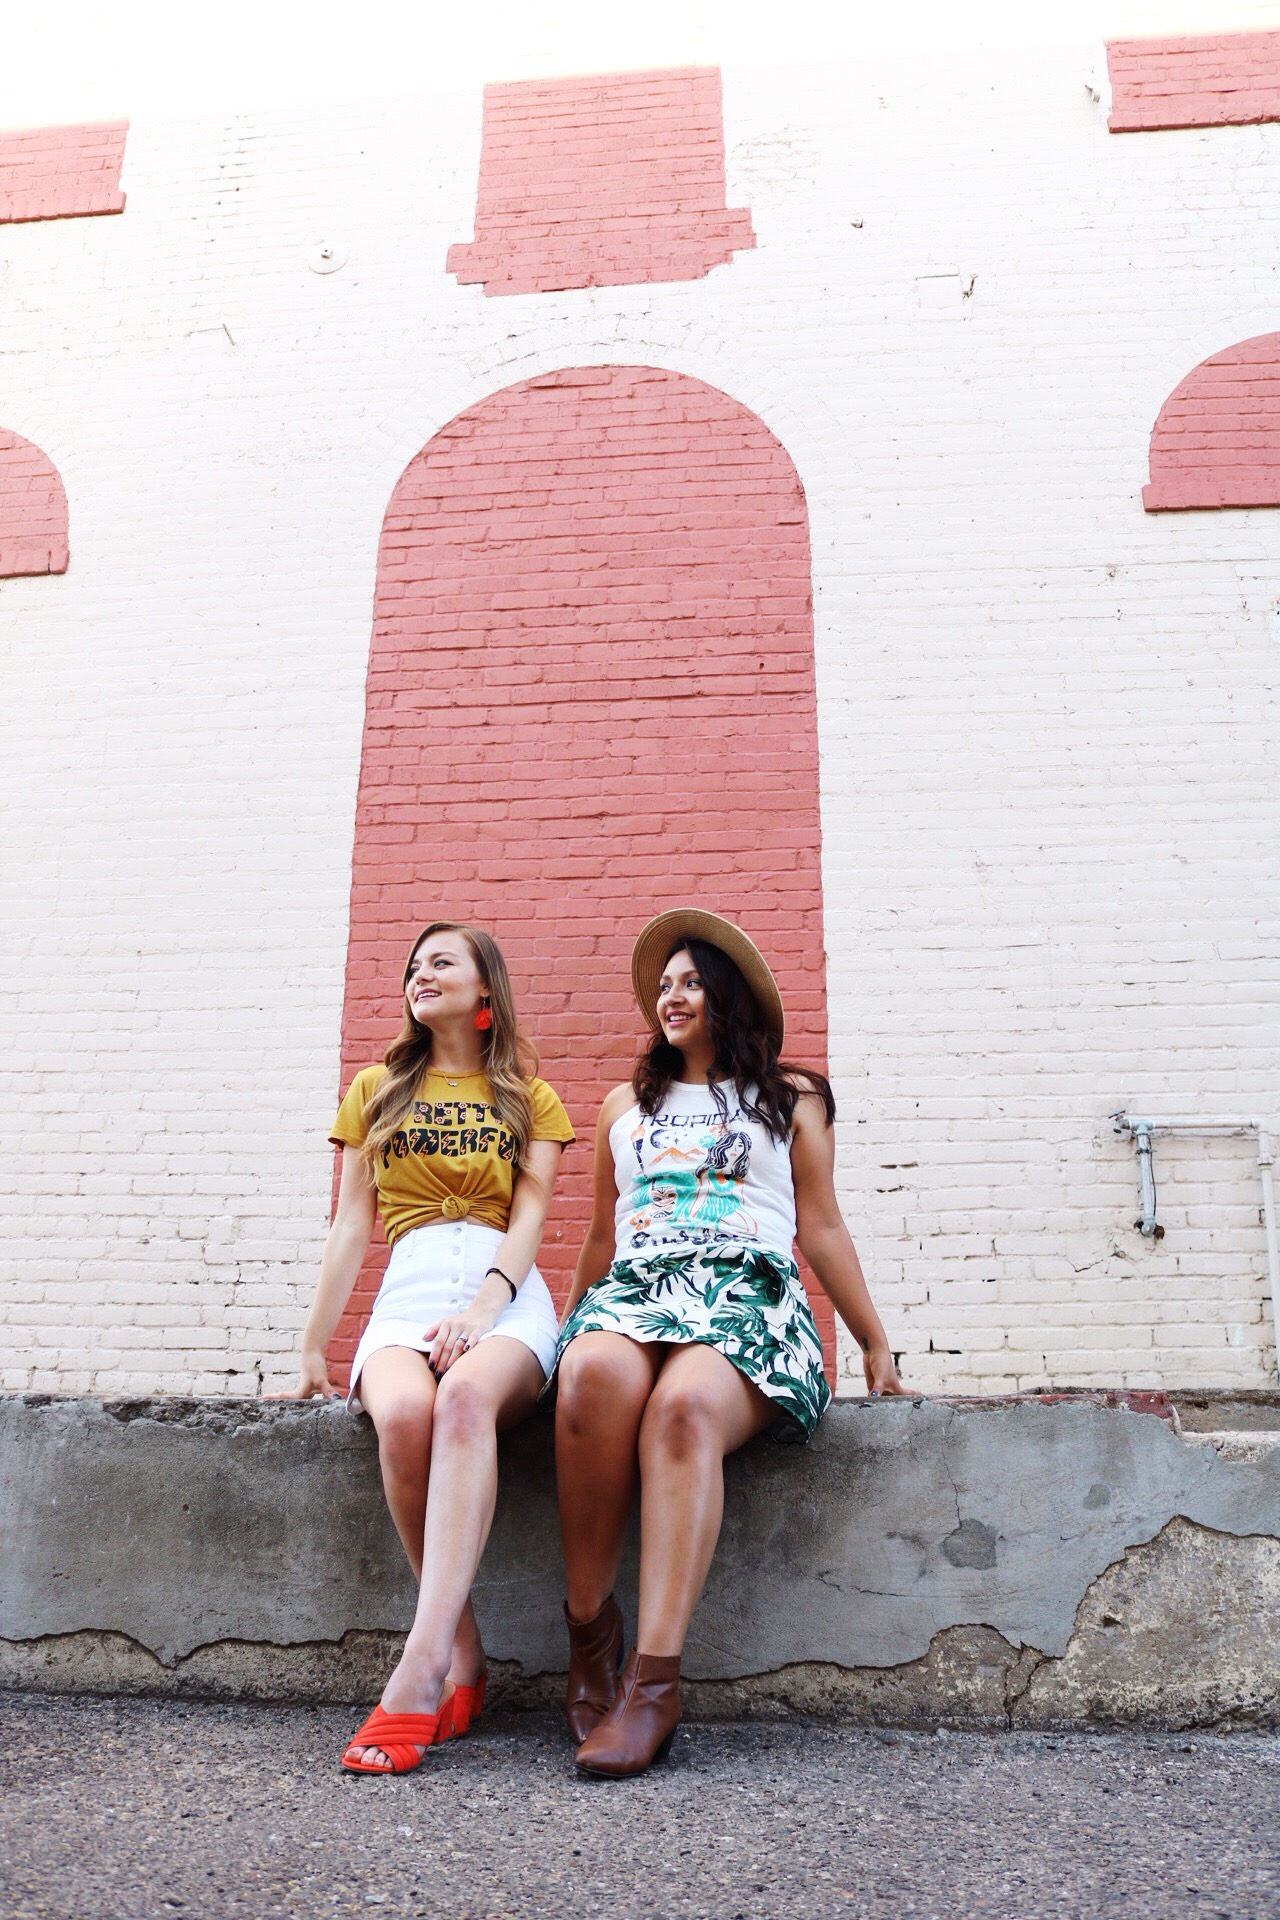 Dazey L.A graphic tees/ Summer fashion graphic tees and mini skirts paired with bright colored accessories